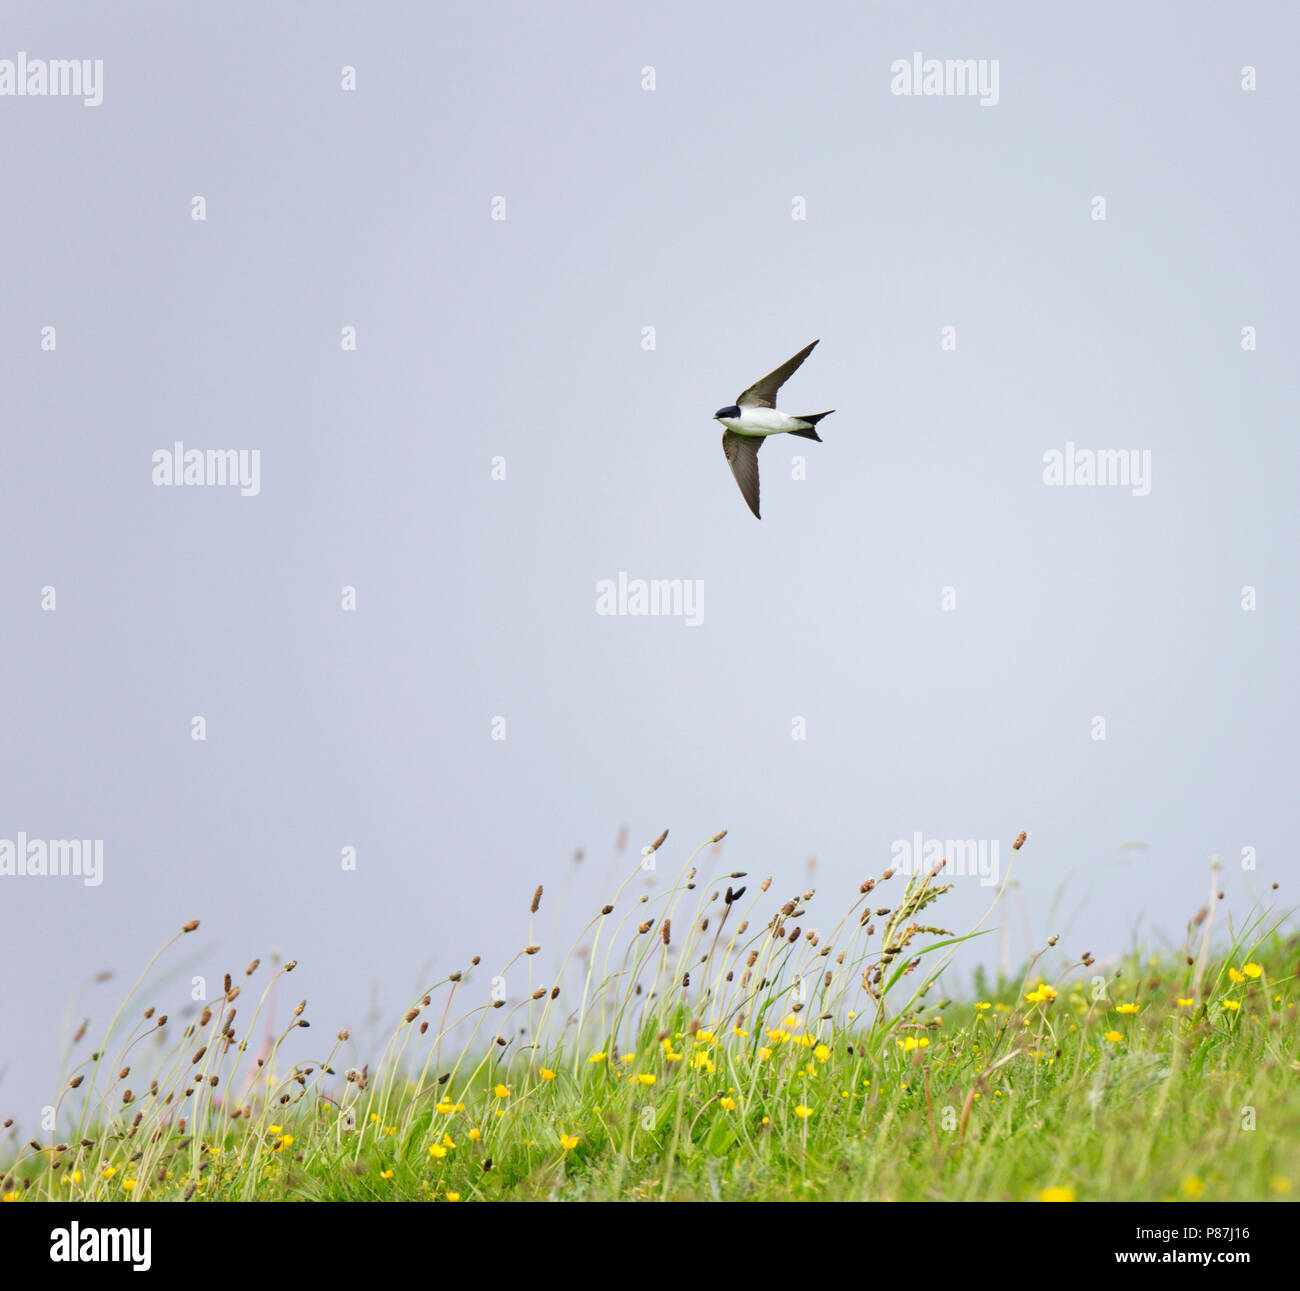 Fouragerende Huiszwaluw vliegt met slecht en koud weer laag boven een bloeiend weiland;Foraging House Martin flying low above flowering meadow in bad Stock Photo